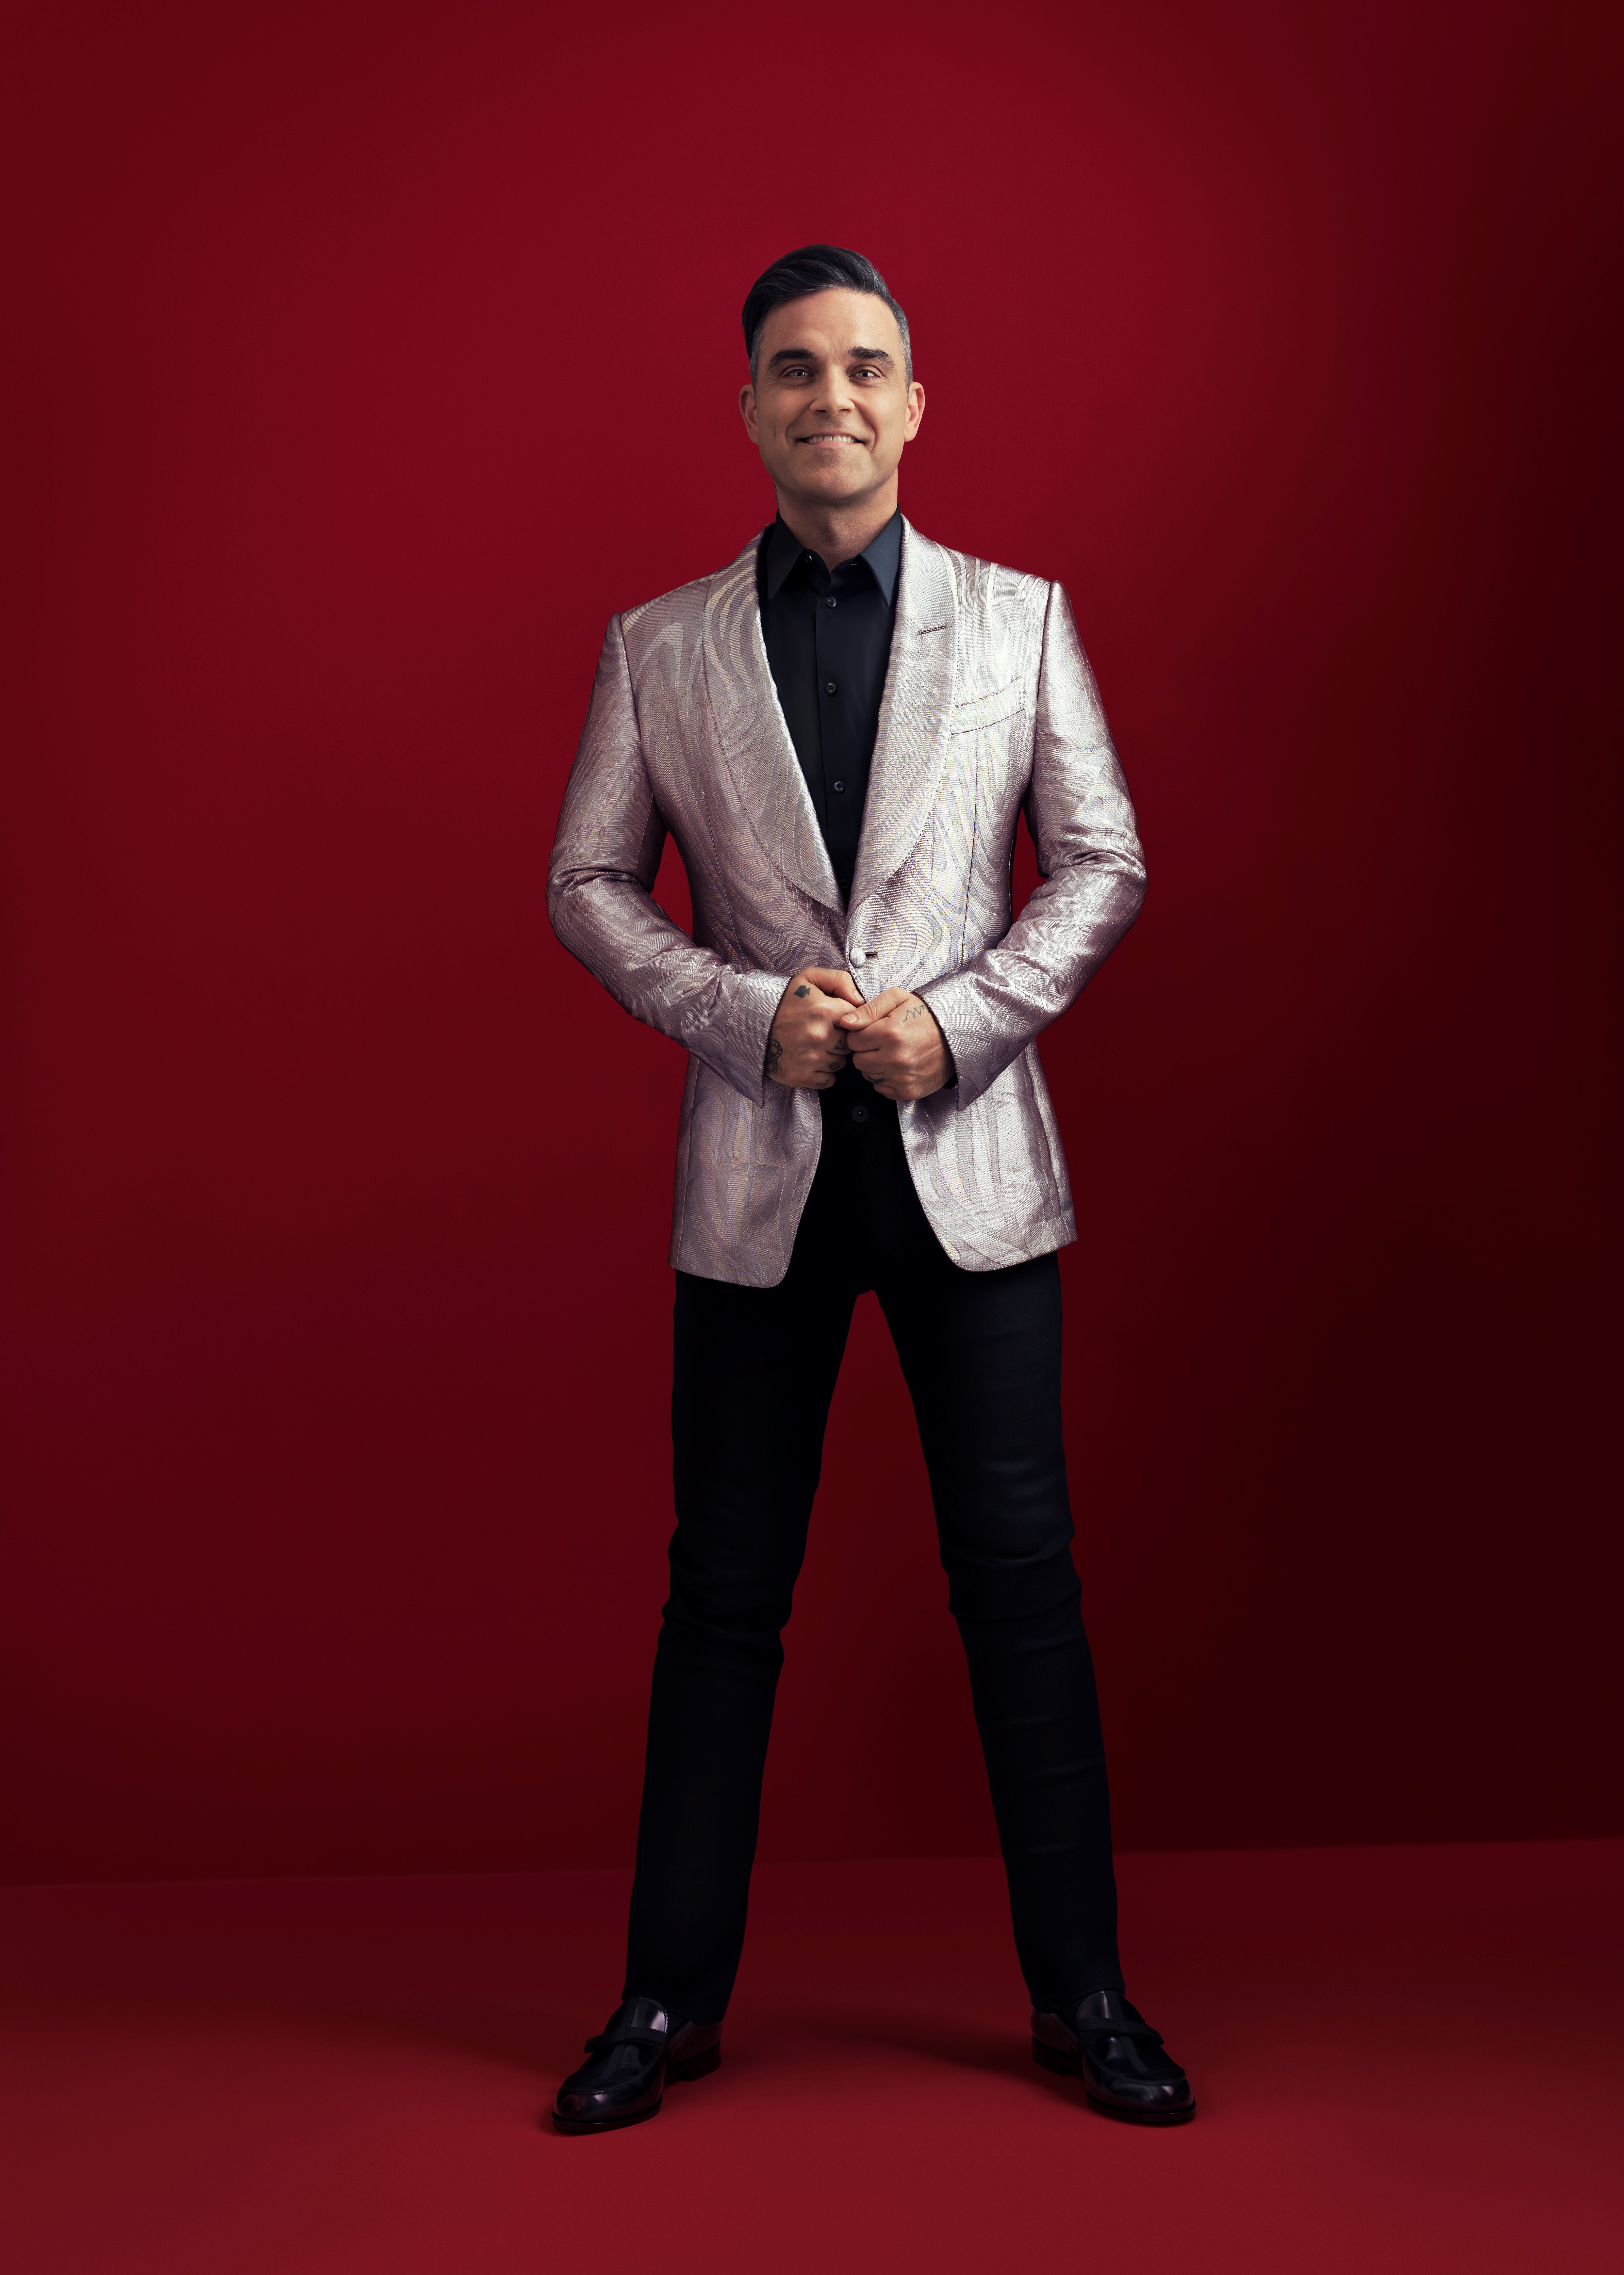 Robbie Williams' new Christmas show on ITV | Entertainment Daily